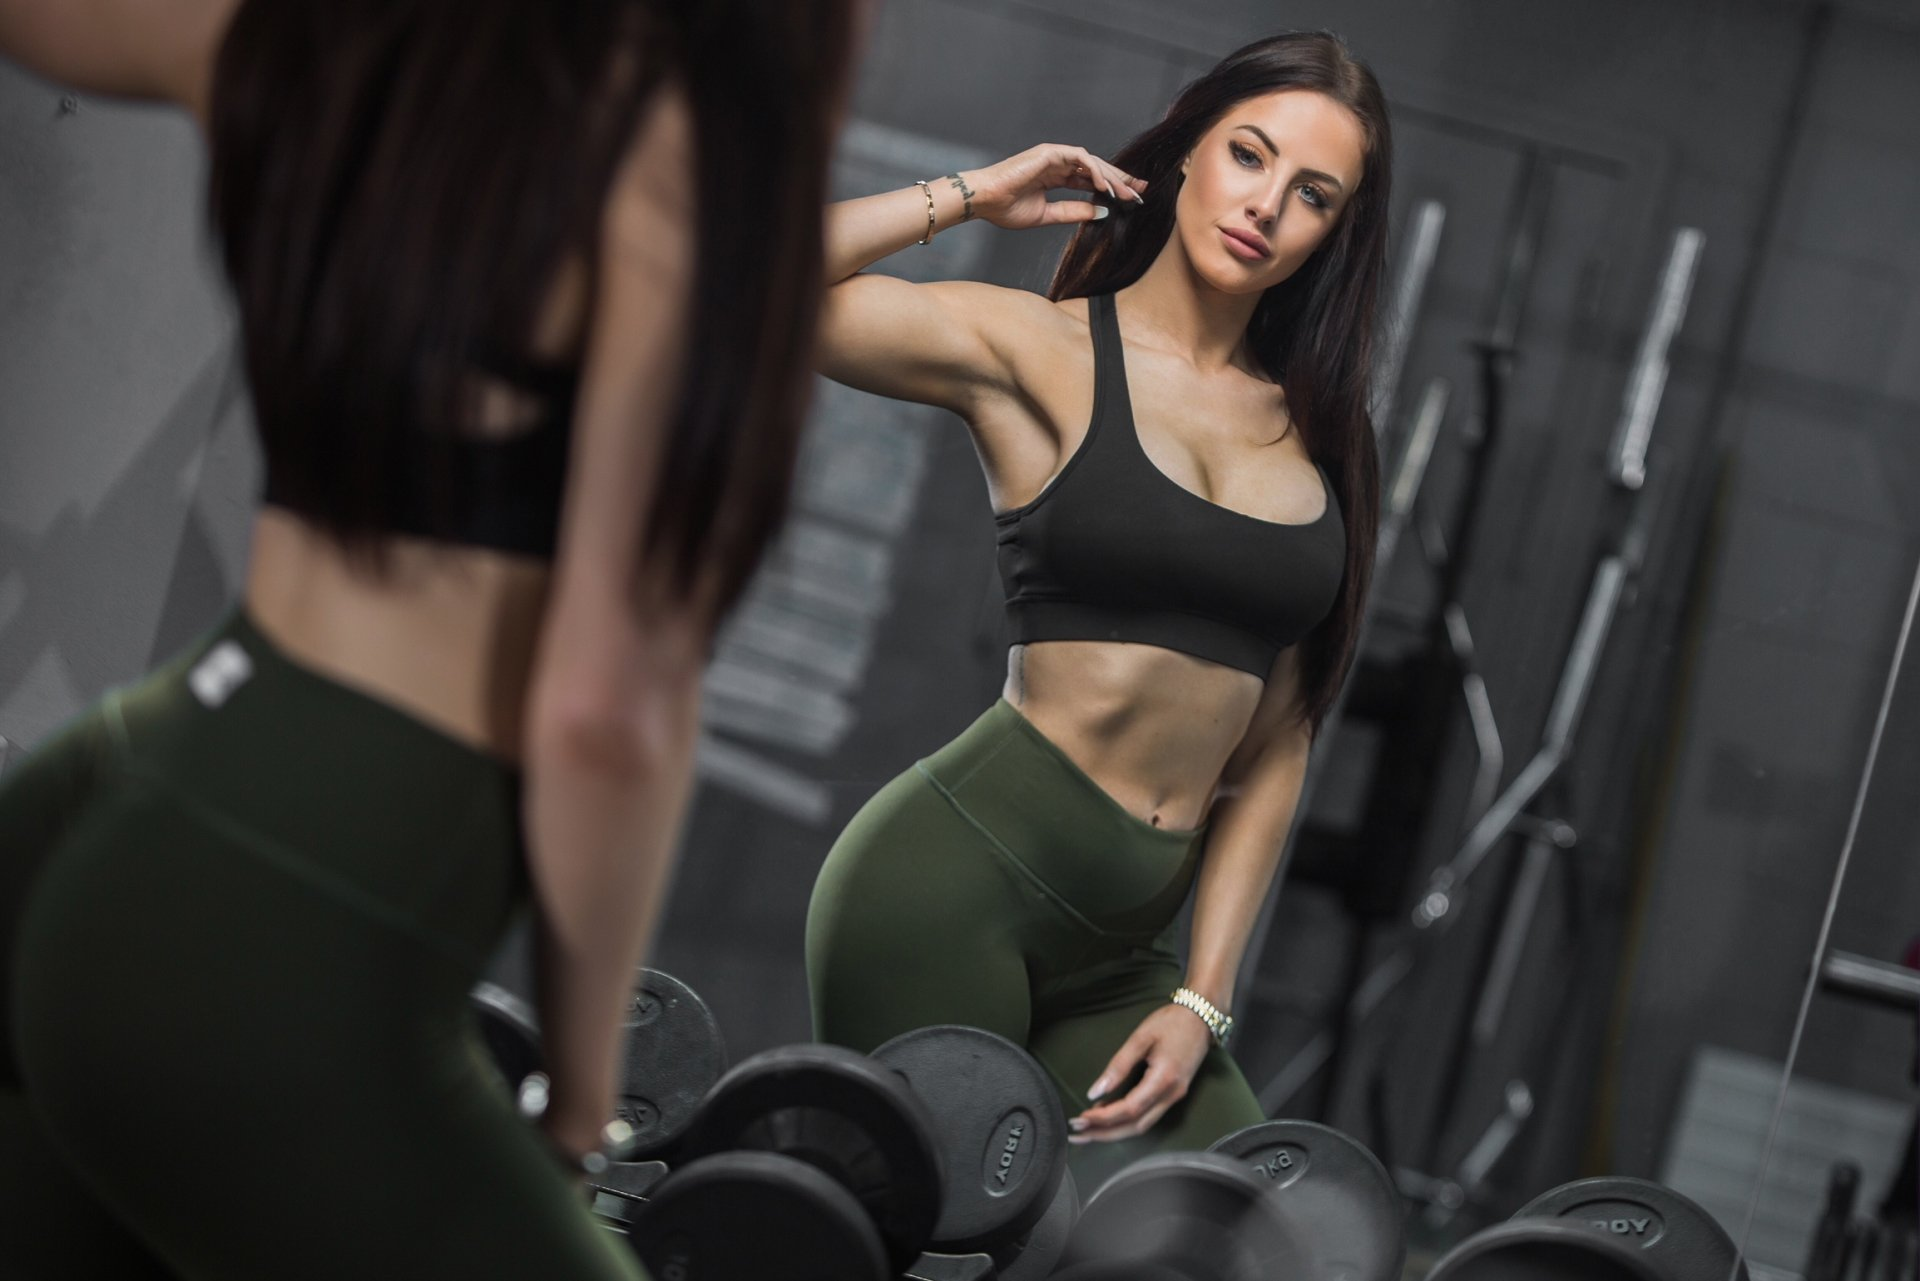 Wallpaper Black Hair Fitness Girl Long Model Woman Desktop